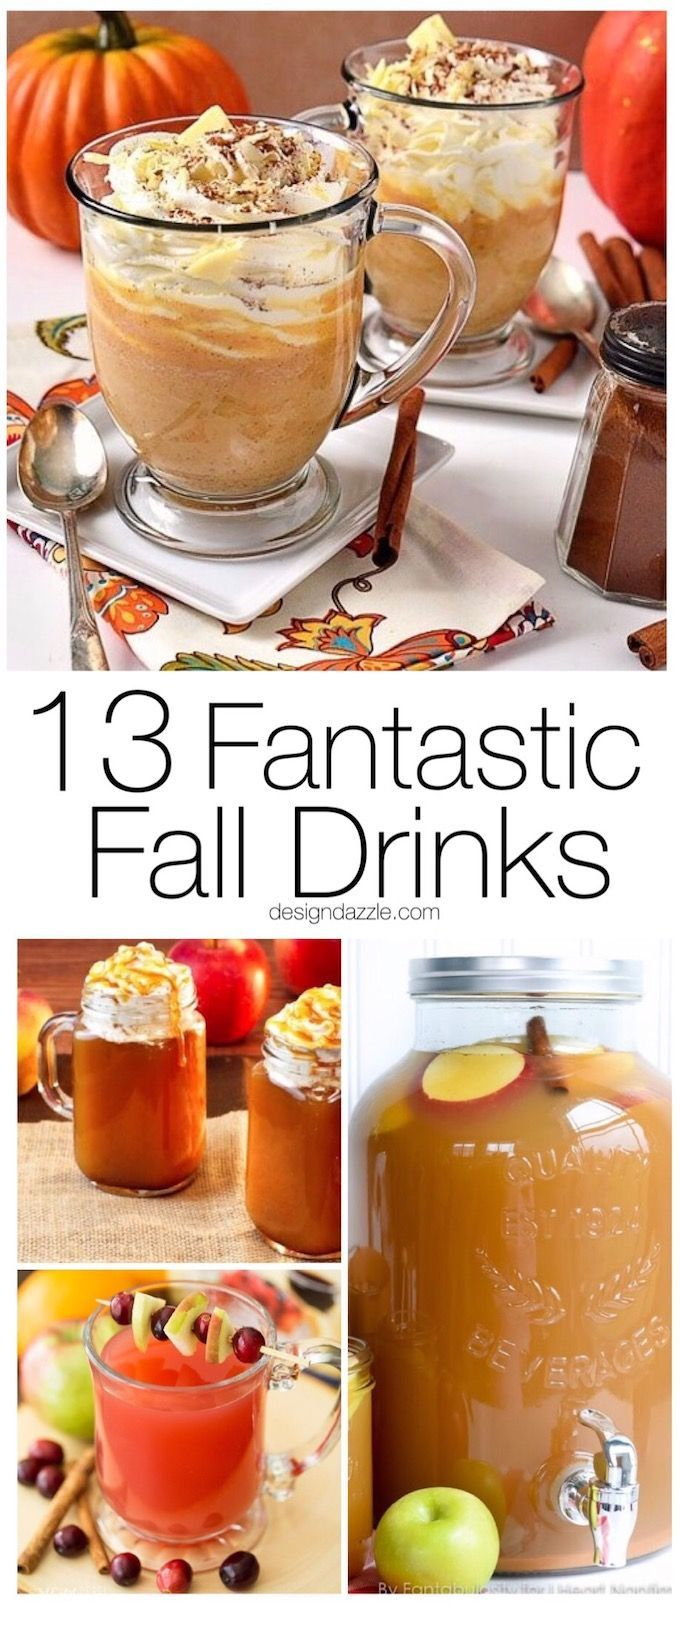 Crisp apples, ripe cranberries and plenty of pumpkin spice go into making these 13 fantastic fall drinks to give you something to look forward to this fall! | fall inspired drink recipes | drink recipes for fall | fall beverages | pumpkin flavored drink r